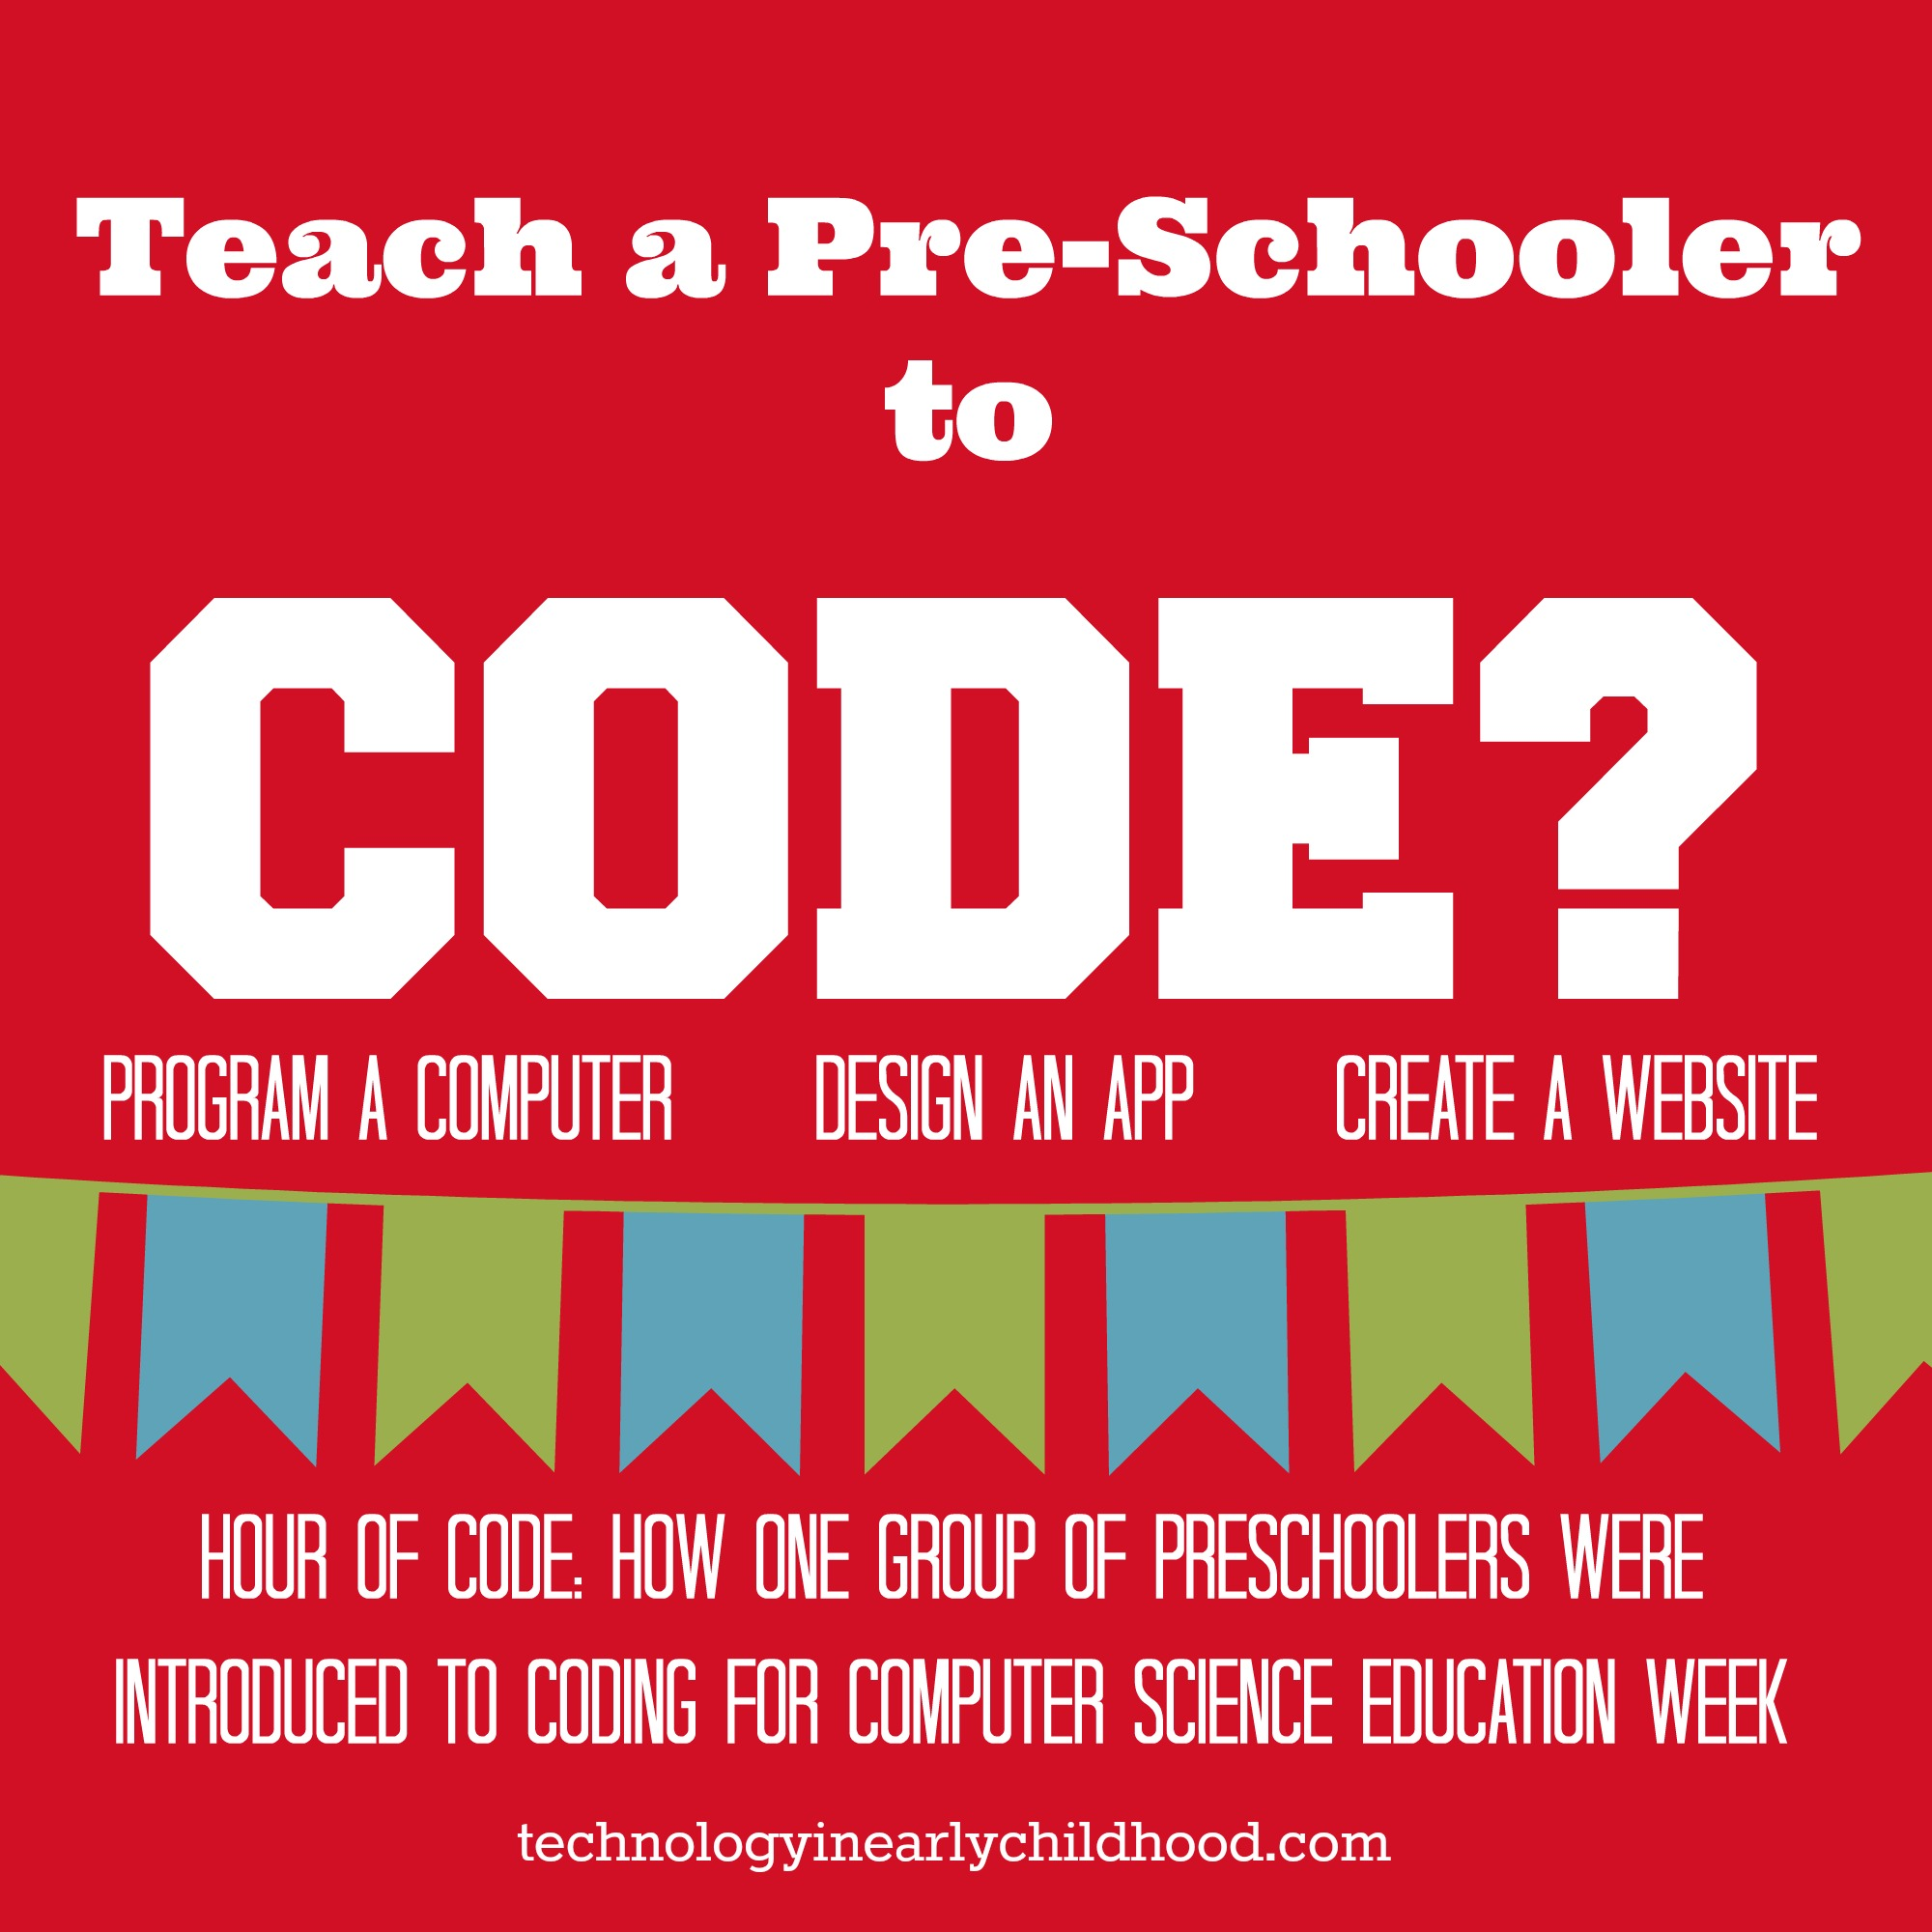 Hour of Code: How one group of preschoolers were introduced to coding for computer science education week.